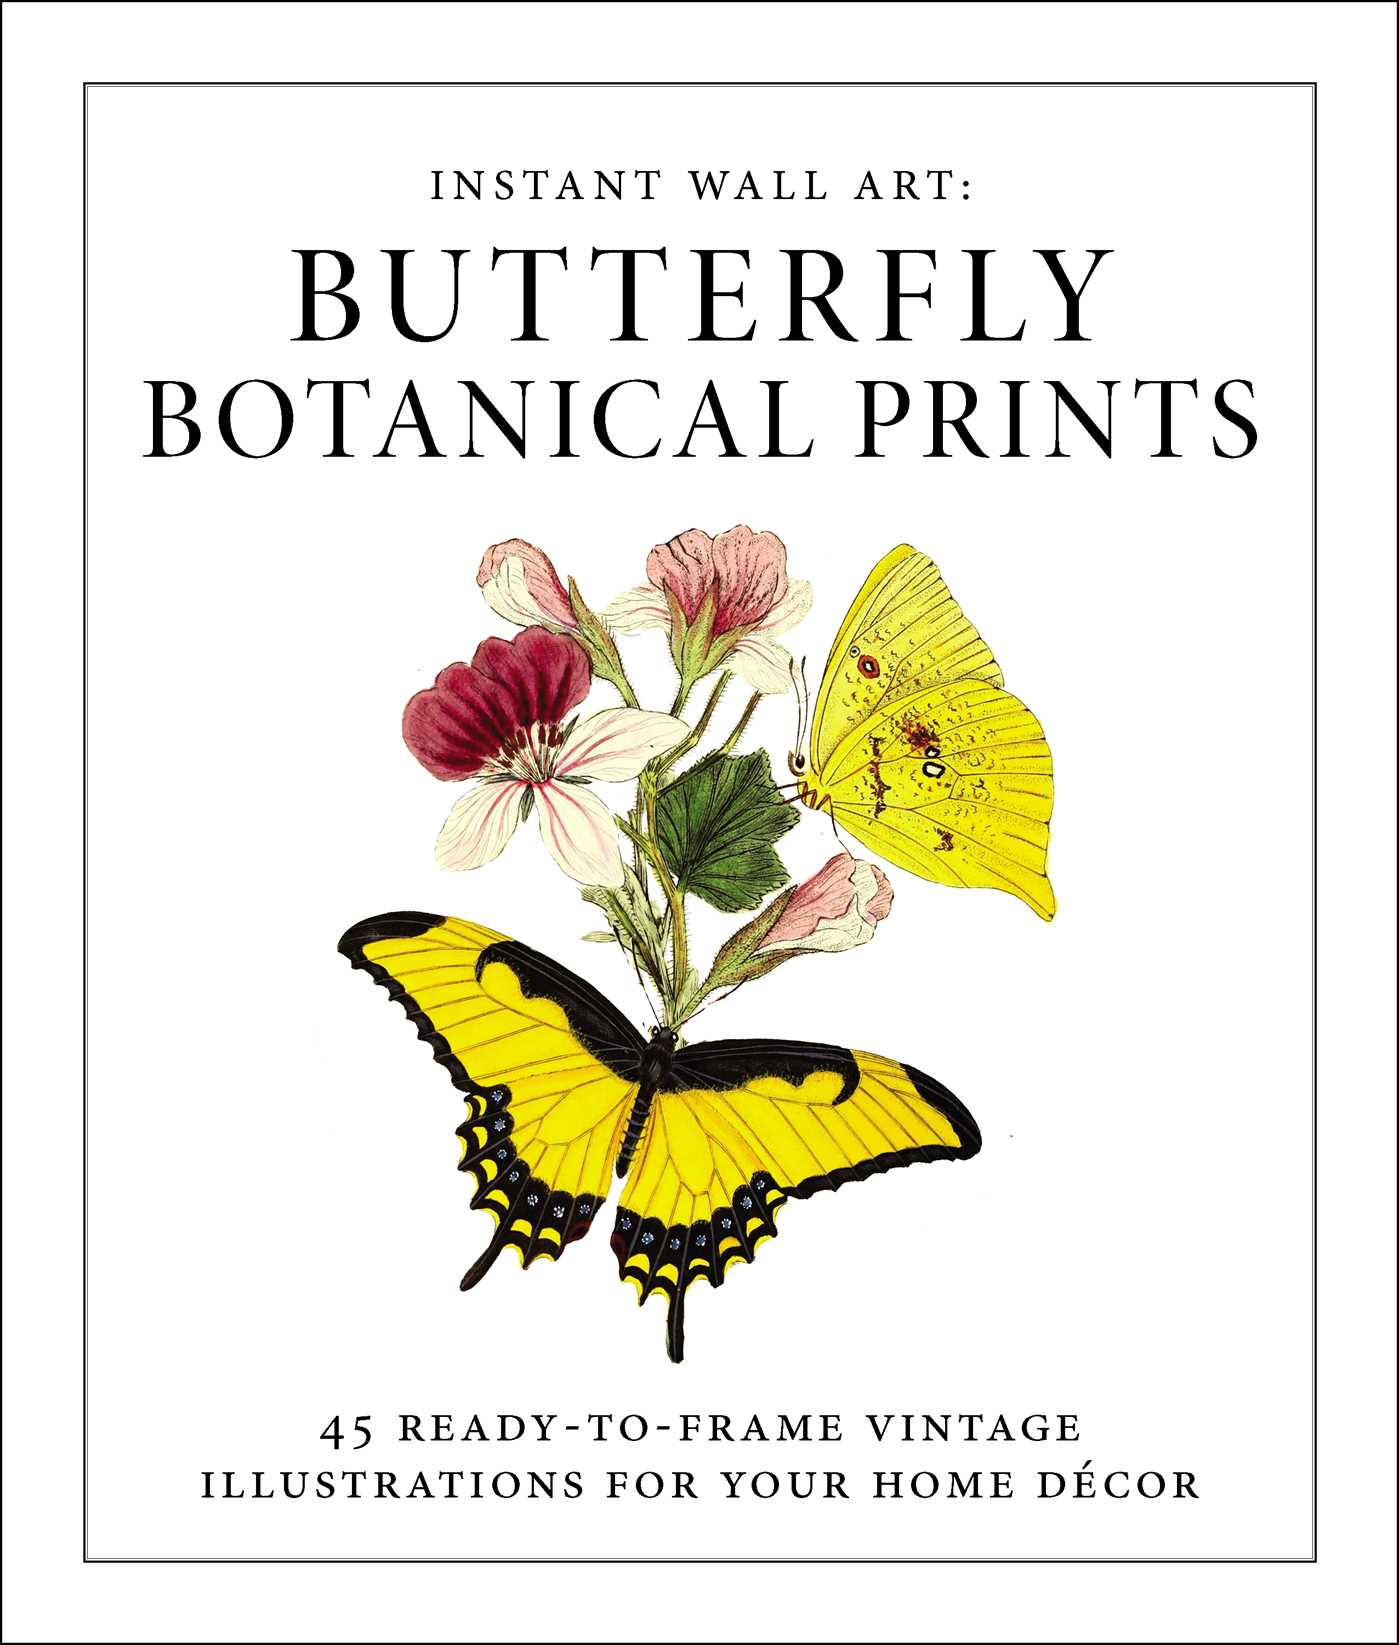 Instant wall art butterfly botanical prints 9781507205280 hr